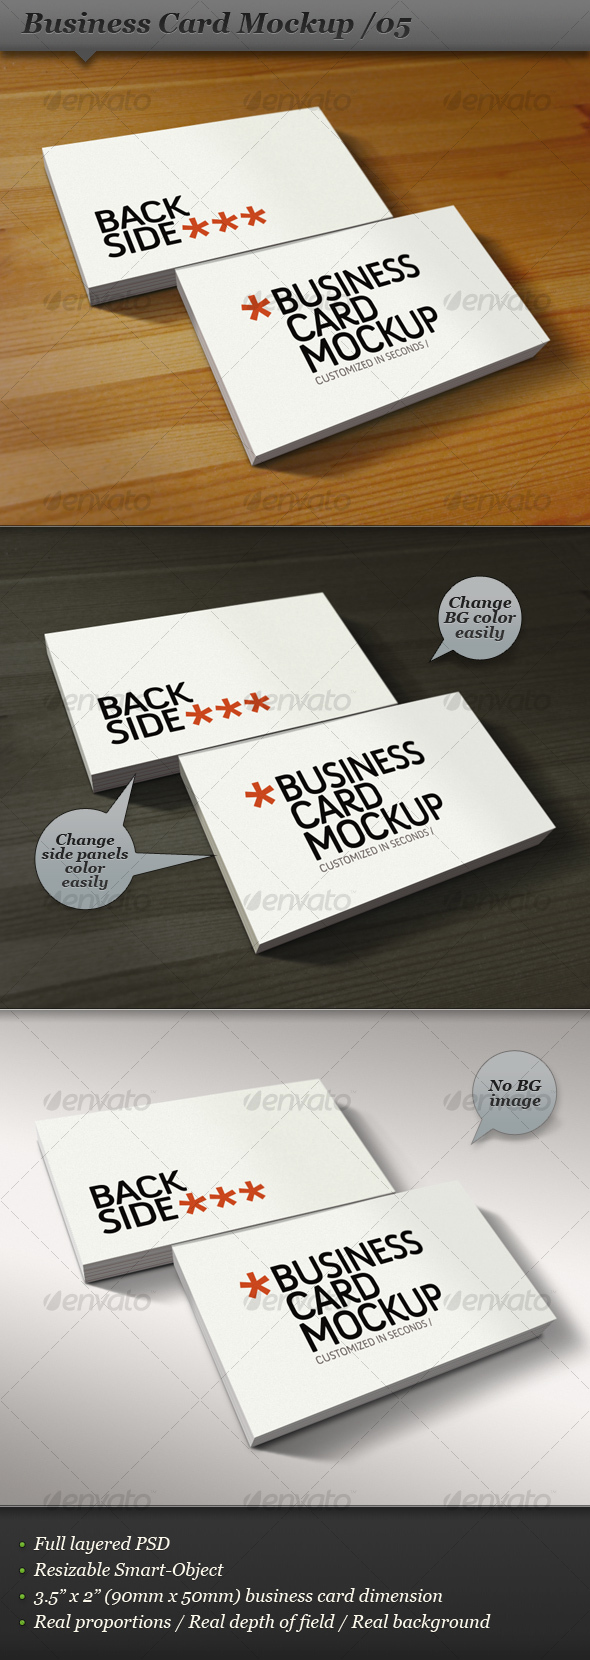 GraphicRiver Business card mockup display Smart template 05 108516